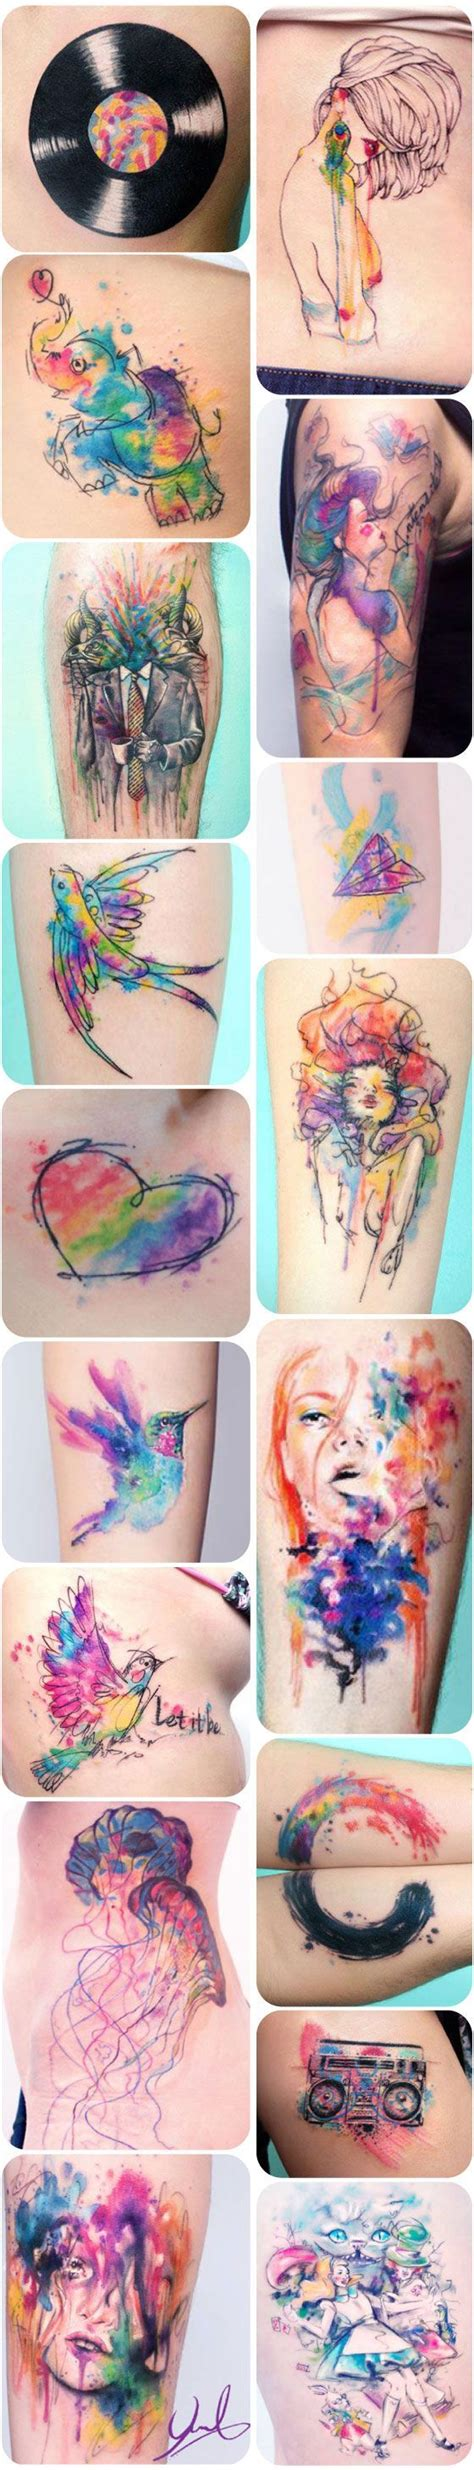 watercolor tattoo longevity tattoos de candelaria carballo watercolors tattoos and